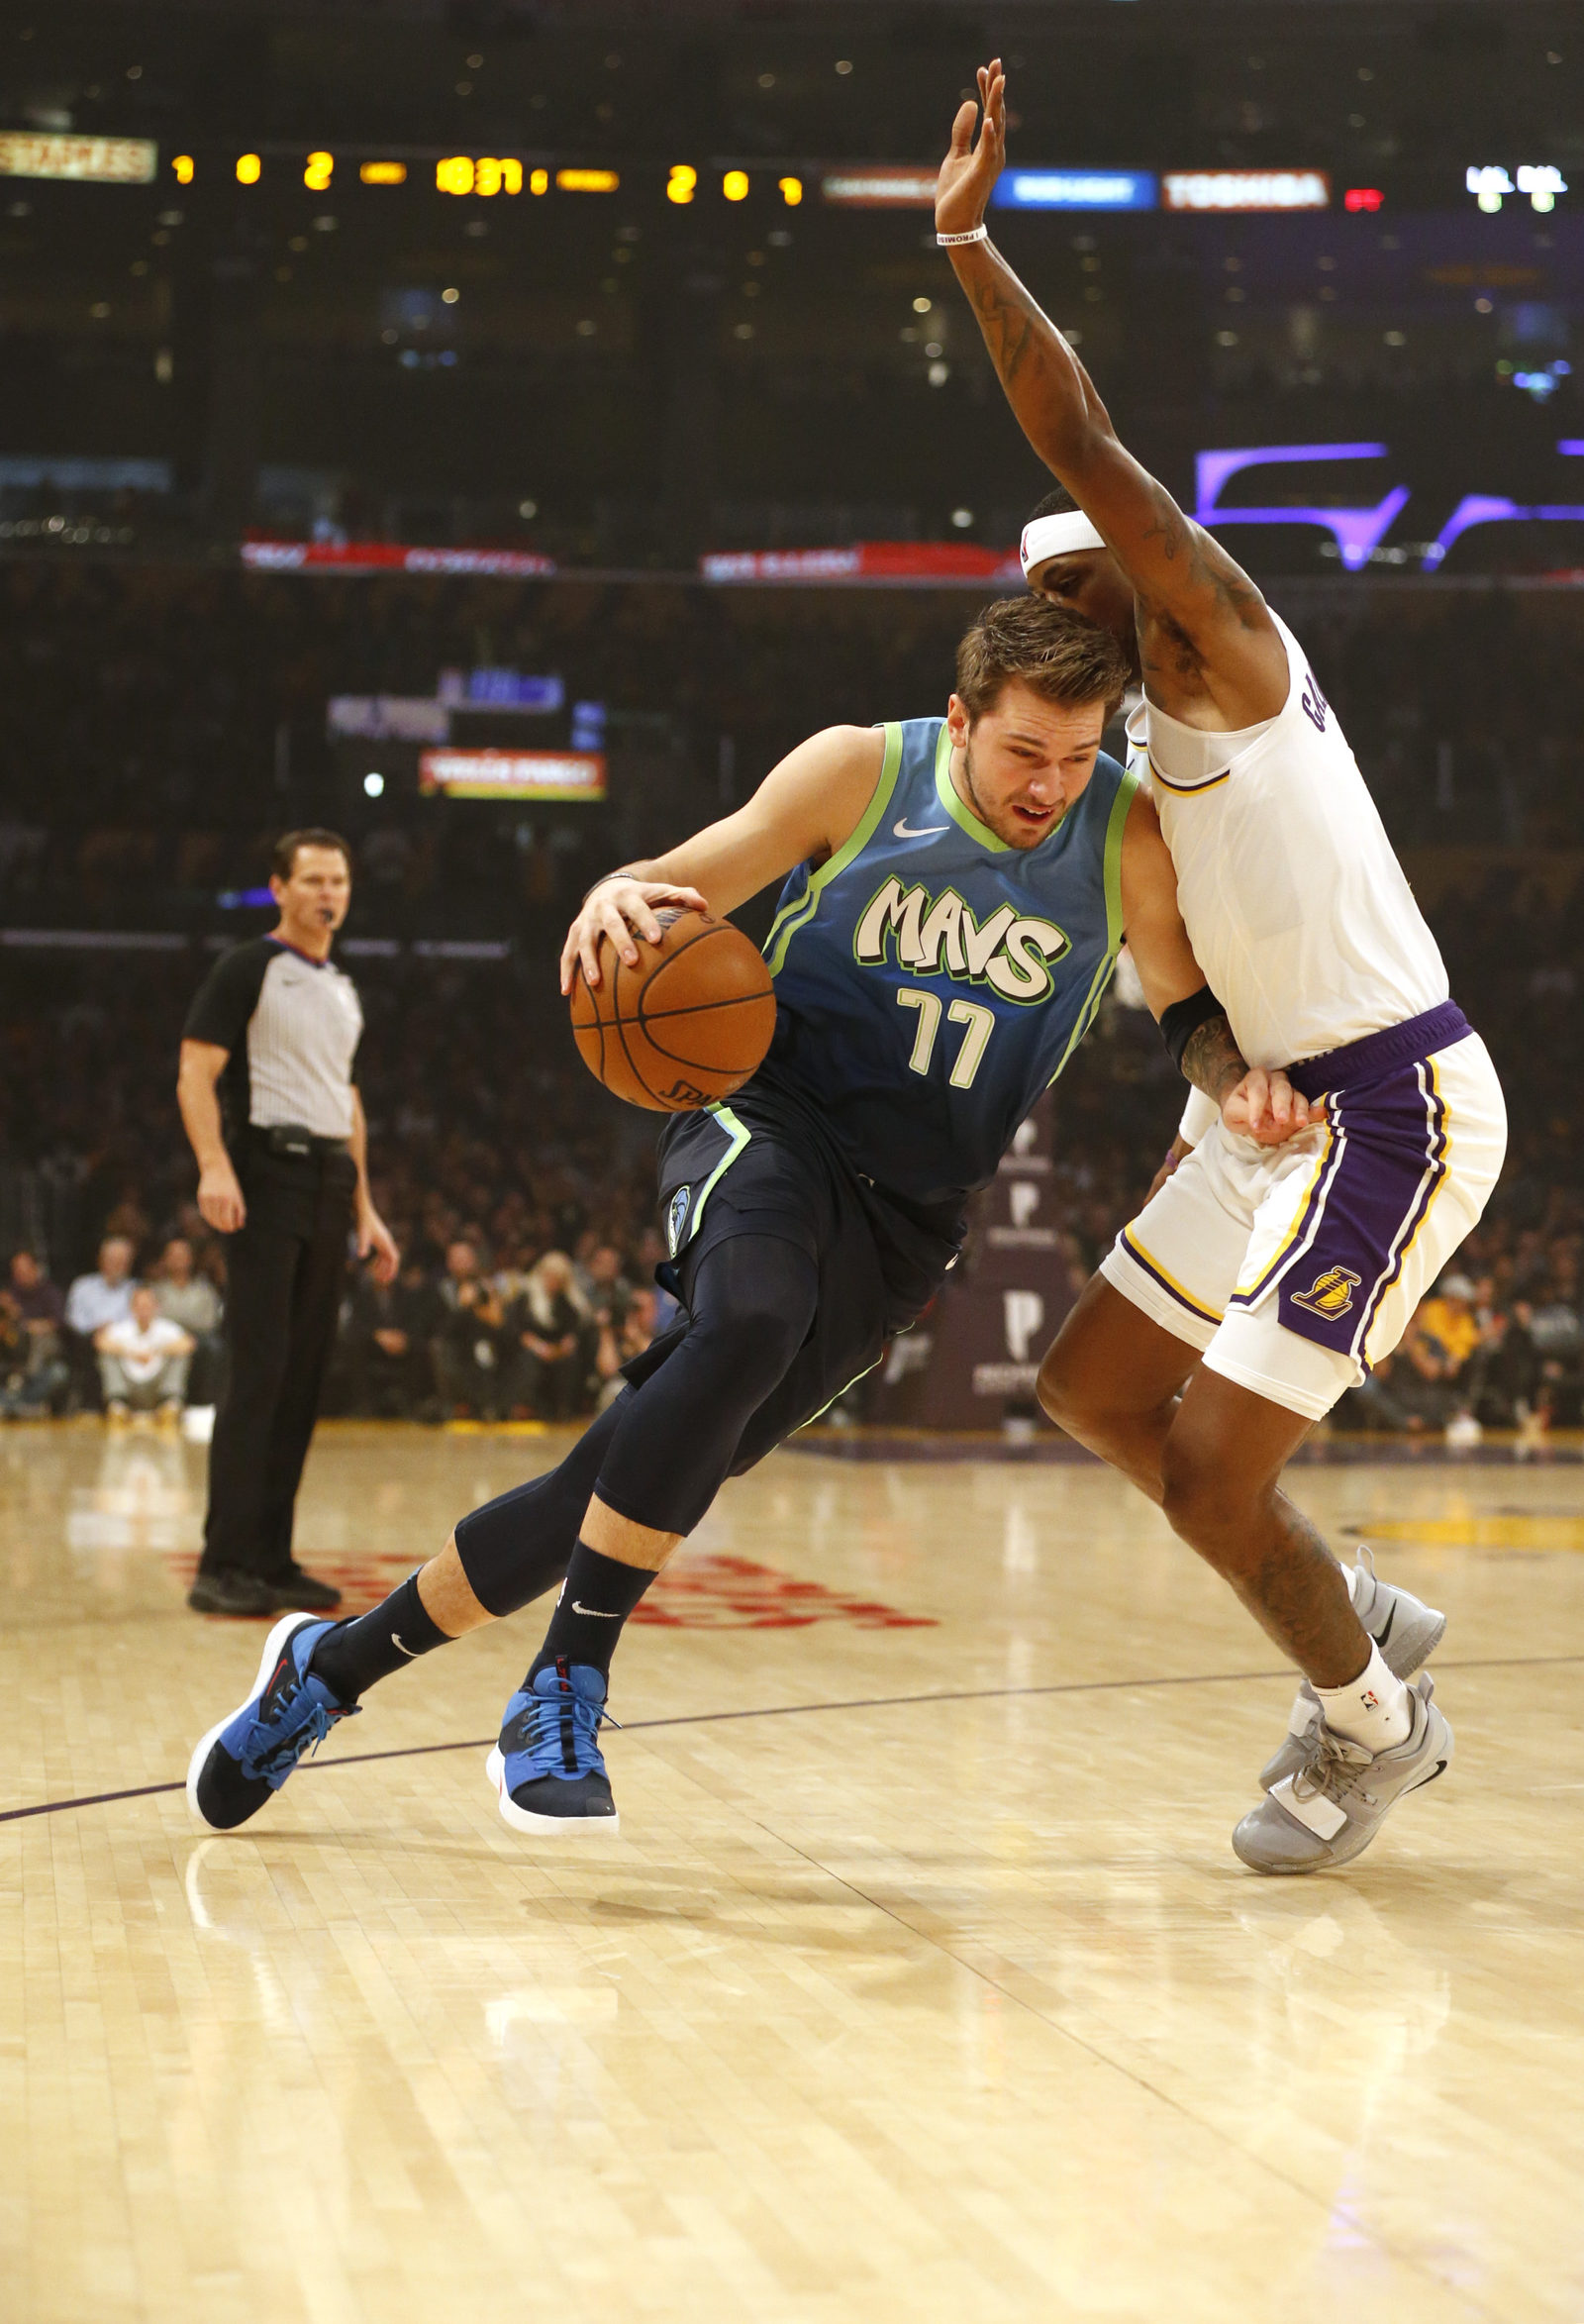 Luka Doncic #77 of the Dallas Mavericks drives around Kentavious Caldwell-Pope #1 of the Los Angeles Lakers during the first half at Staples Center on December 01, 2019 in Los Angeles, California.